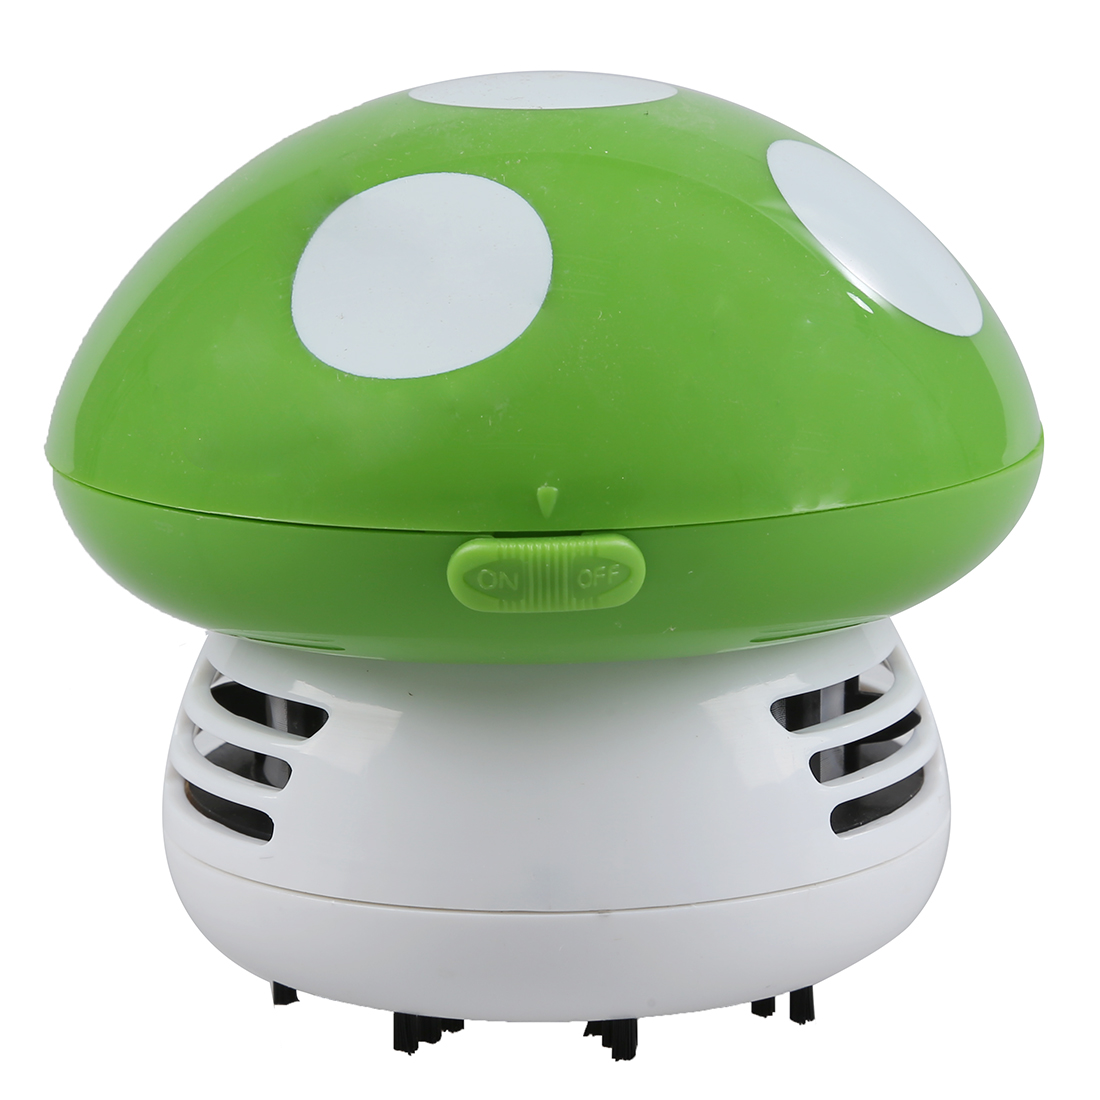 New Home Handheld Mushroom Shaped Mini Vacuum Cleaner Car Laptop keyboard Desktop Dust cleaner-green текстолитовые шестерни на стартер